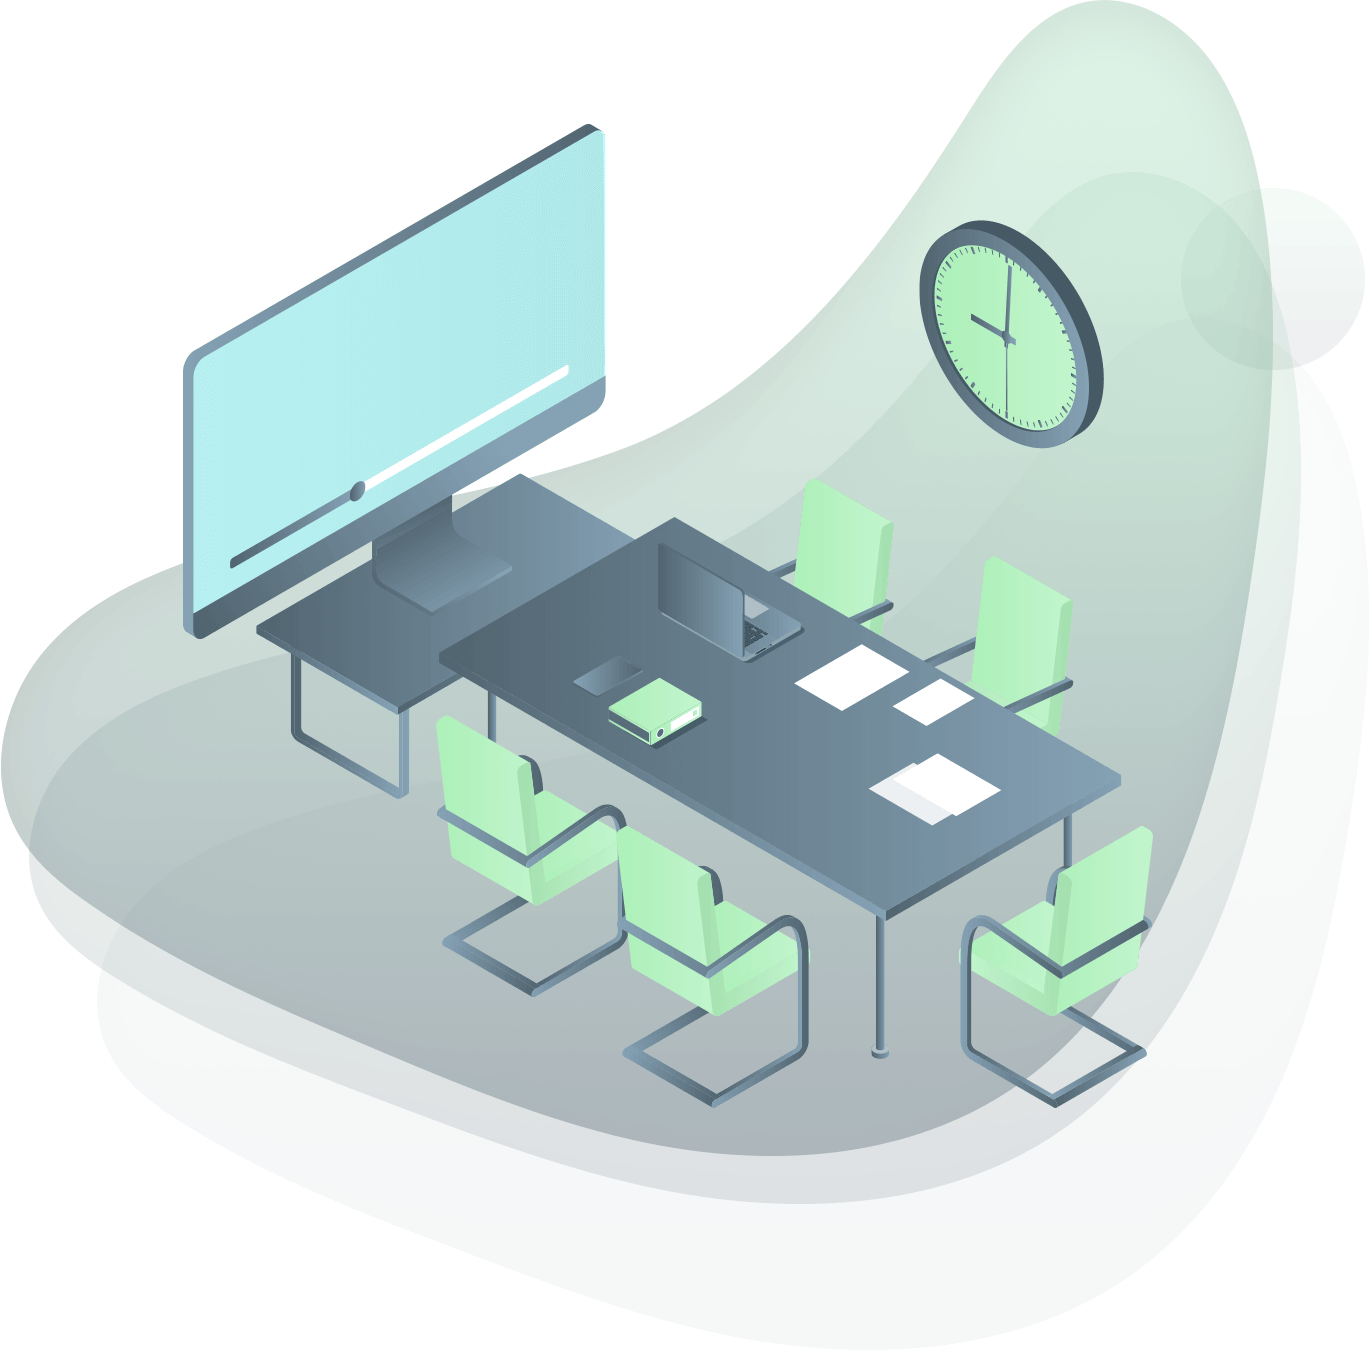 illustration of conference room with a video conference screen